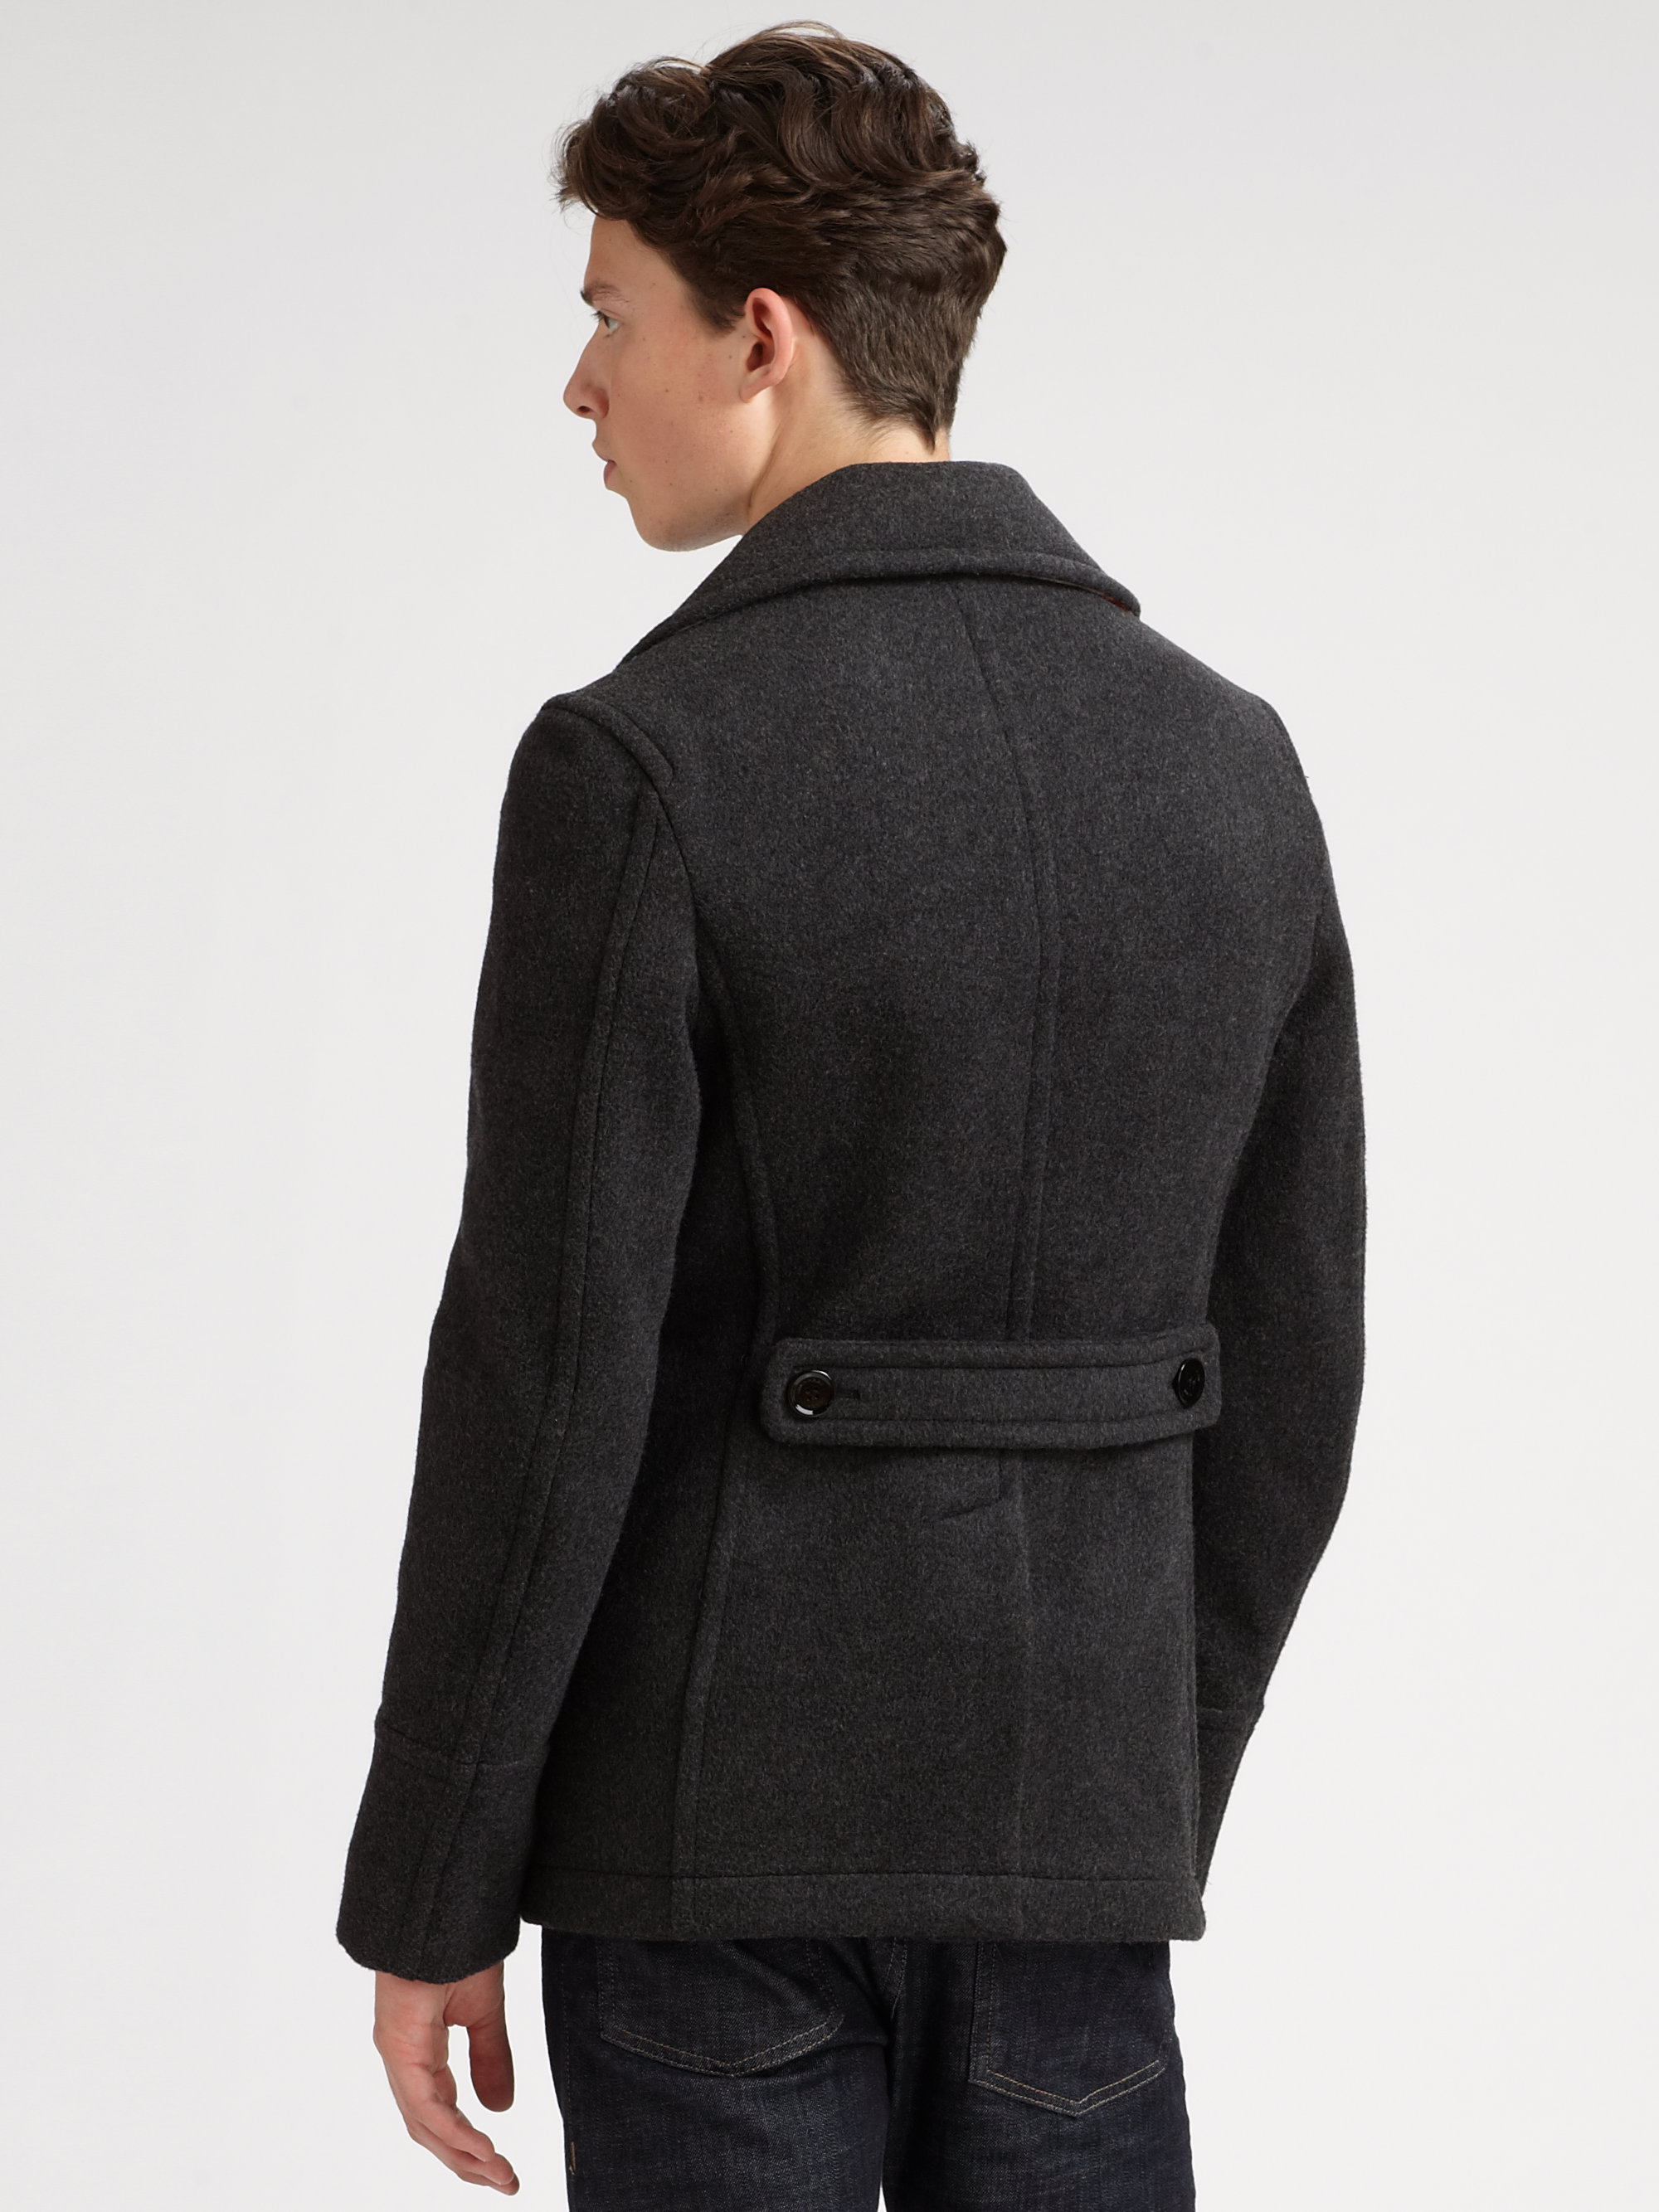 Grey Pea Coat - Tradingbasis